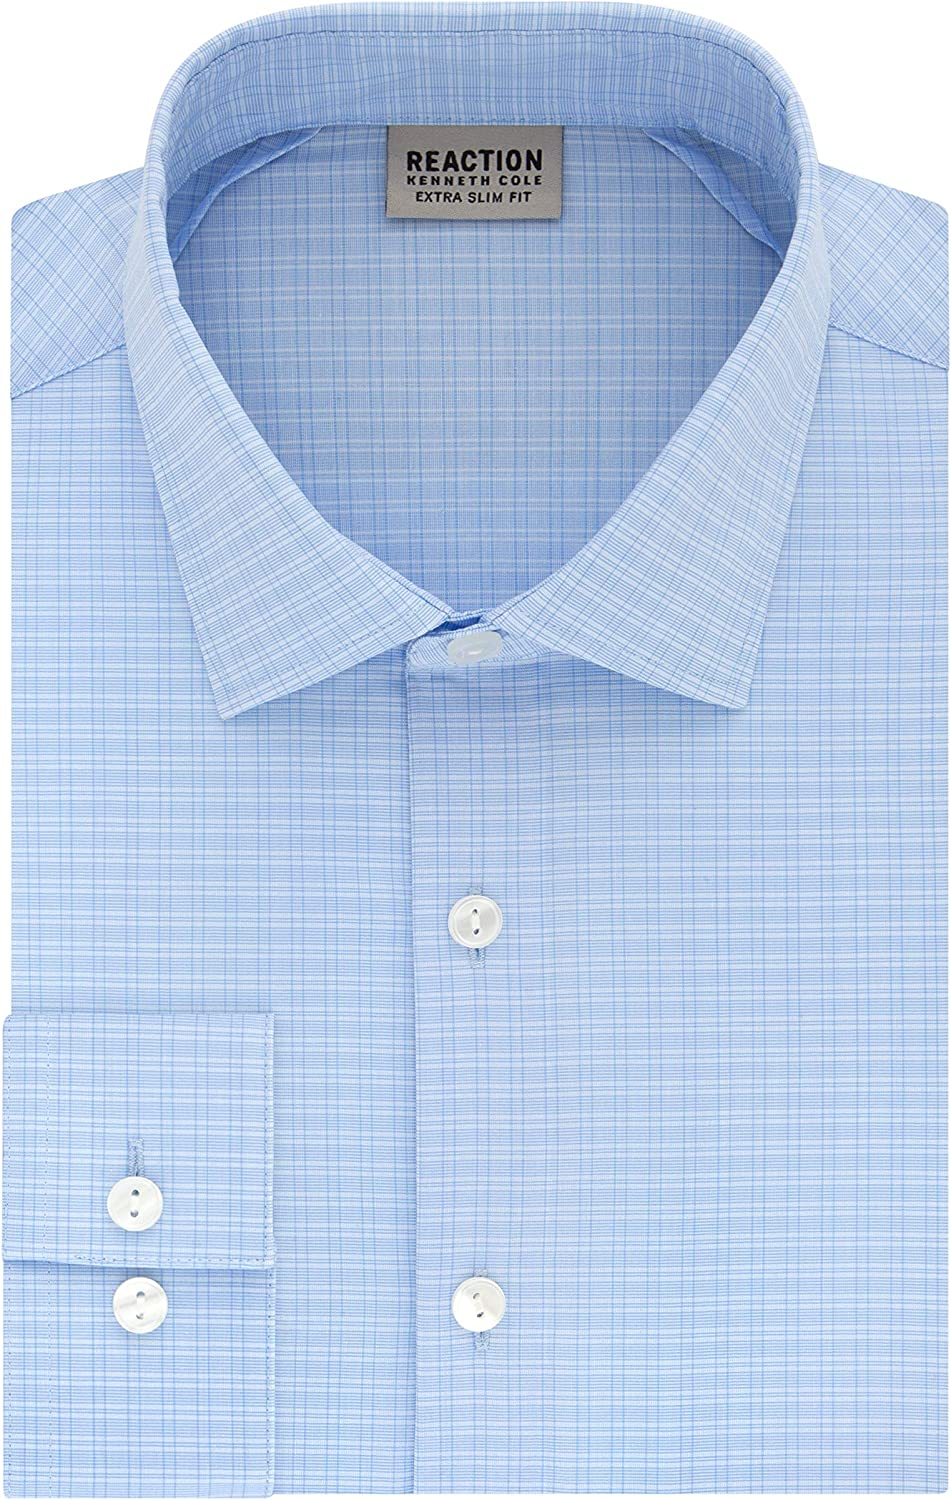 gift Kenneth Cole In stock REACTION Men's Dress Shirt Extra Slim Fit Stretch S